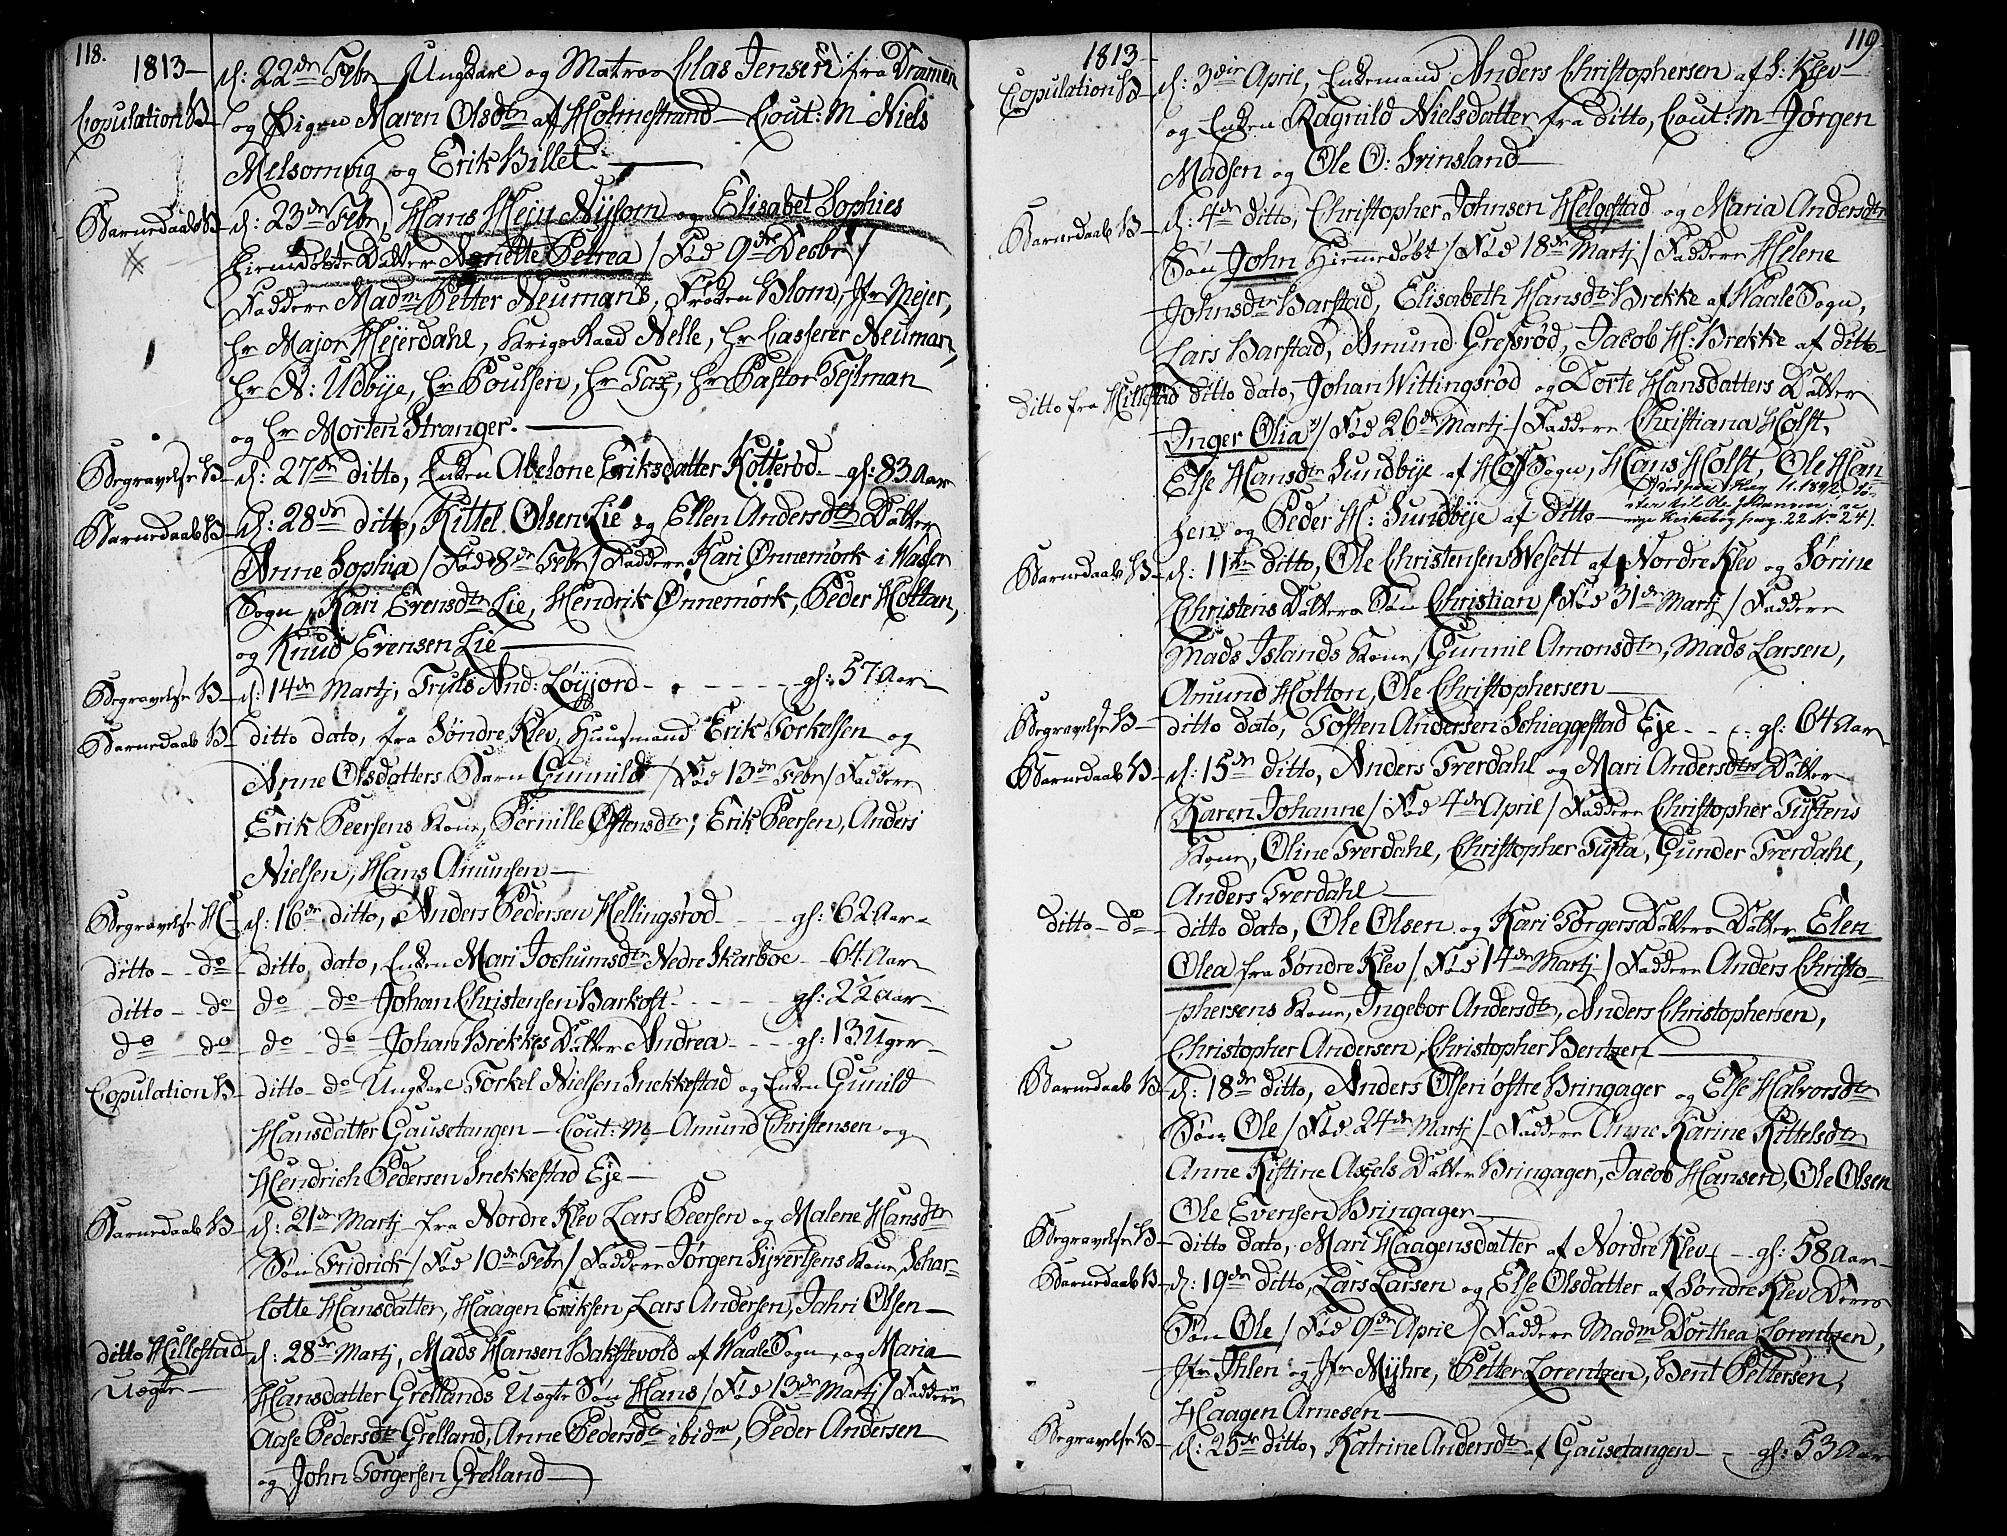 SAKO, Botne kirkebøker, F/Fa/L0003: Parish register (official) no. I 3 /1, 1792-1844, p. 118-119